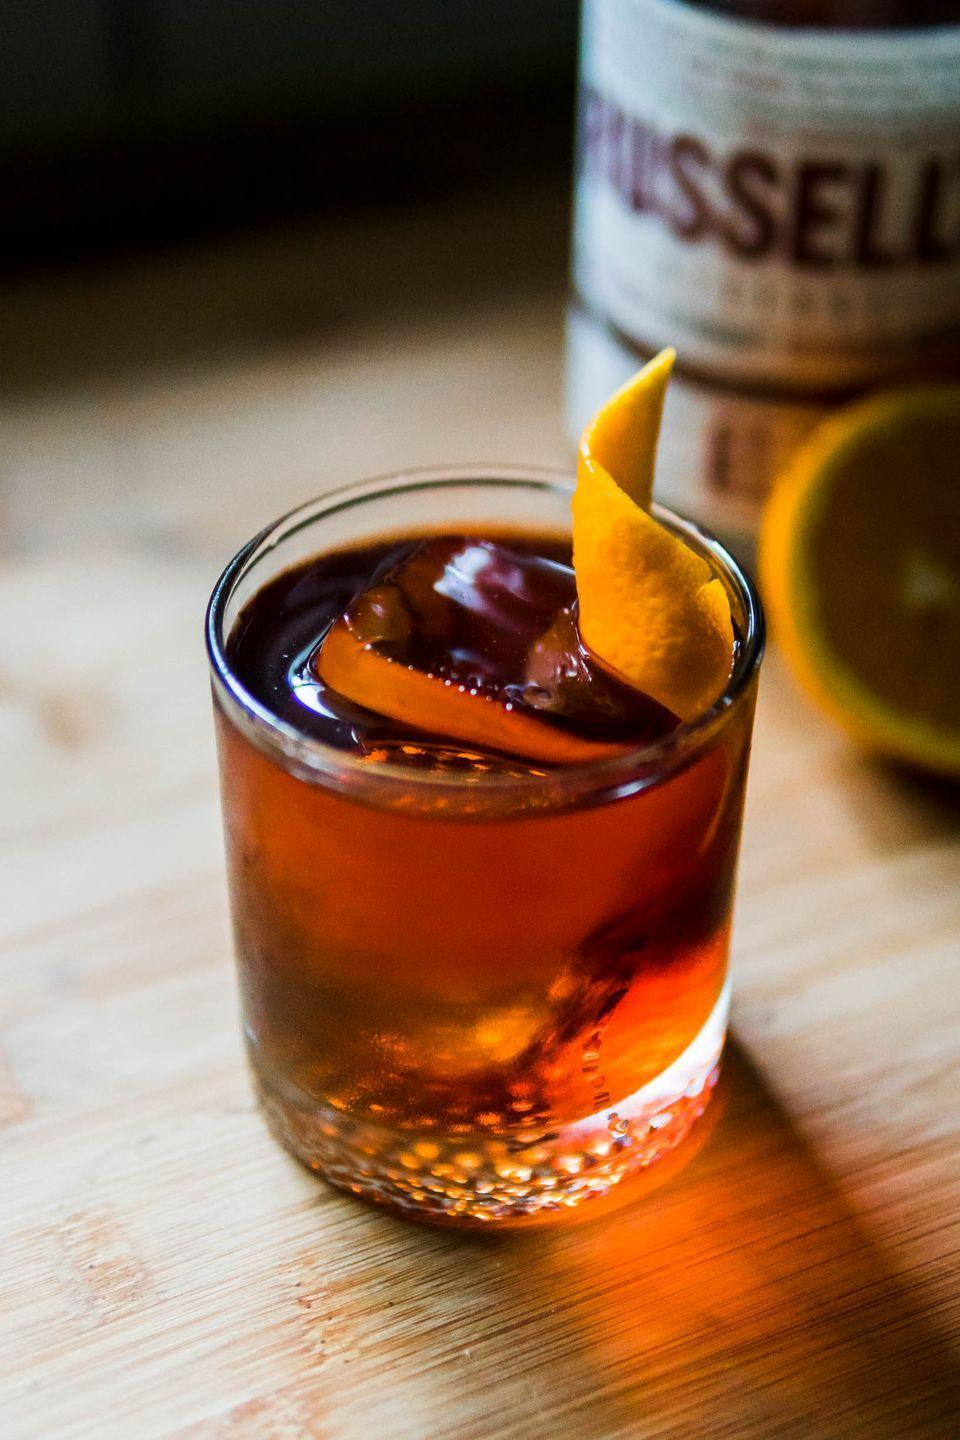 <p><strong>Ingredients</strong></p><p>1 oz Campari<br>1 oz 1757 Vermouth di Torino Rosso<br>1 oz Russell's Reserve 10-Year-Old Bourbon<br>Orange slice, for garnish</p><p><strong>Instructions</strong></p><p> Combine bourbon, vermouth and Campari in a cocktail shaker. Fill with ice and shake vigorously until outside of shaker is frosty (about 30 seconds). Strain into a chilled rocks glass over large ice cube. Garnish with orange slice.</p>